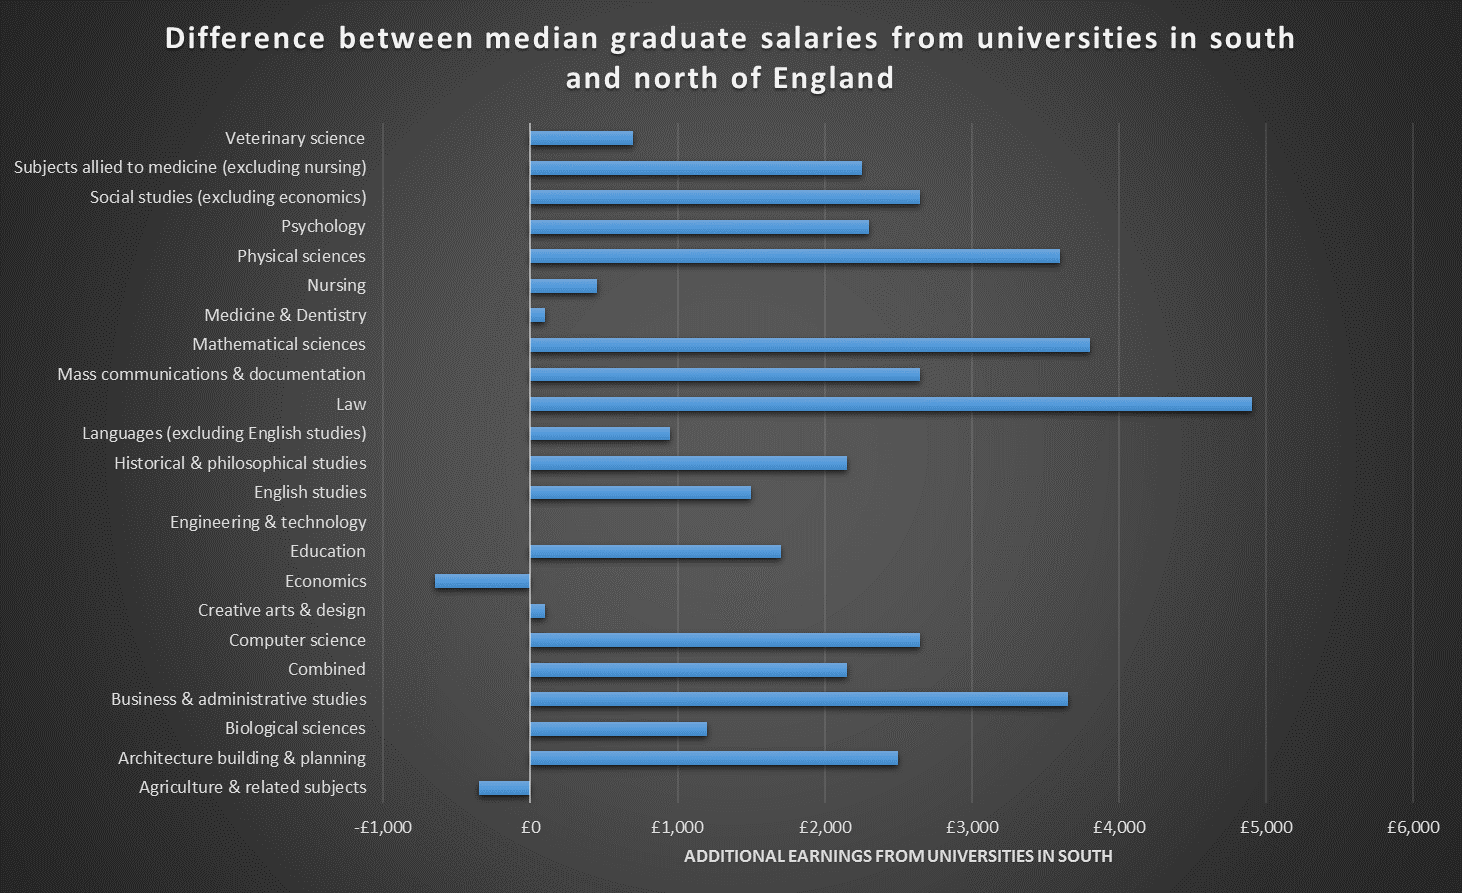 Difference between median graduate salaries from universities in south and north of England